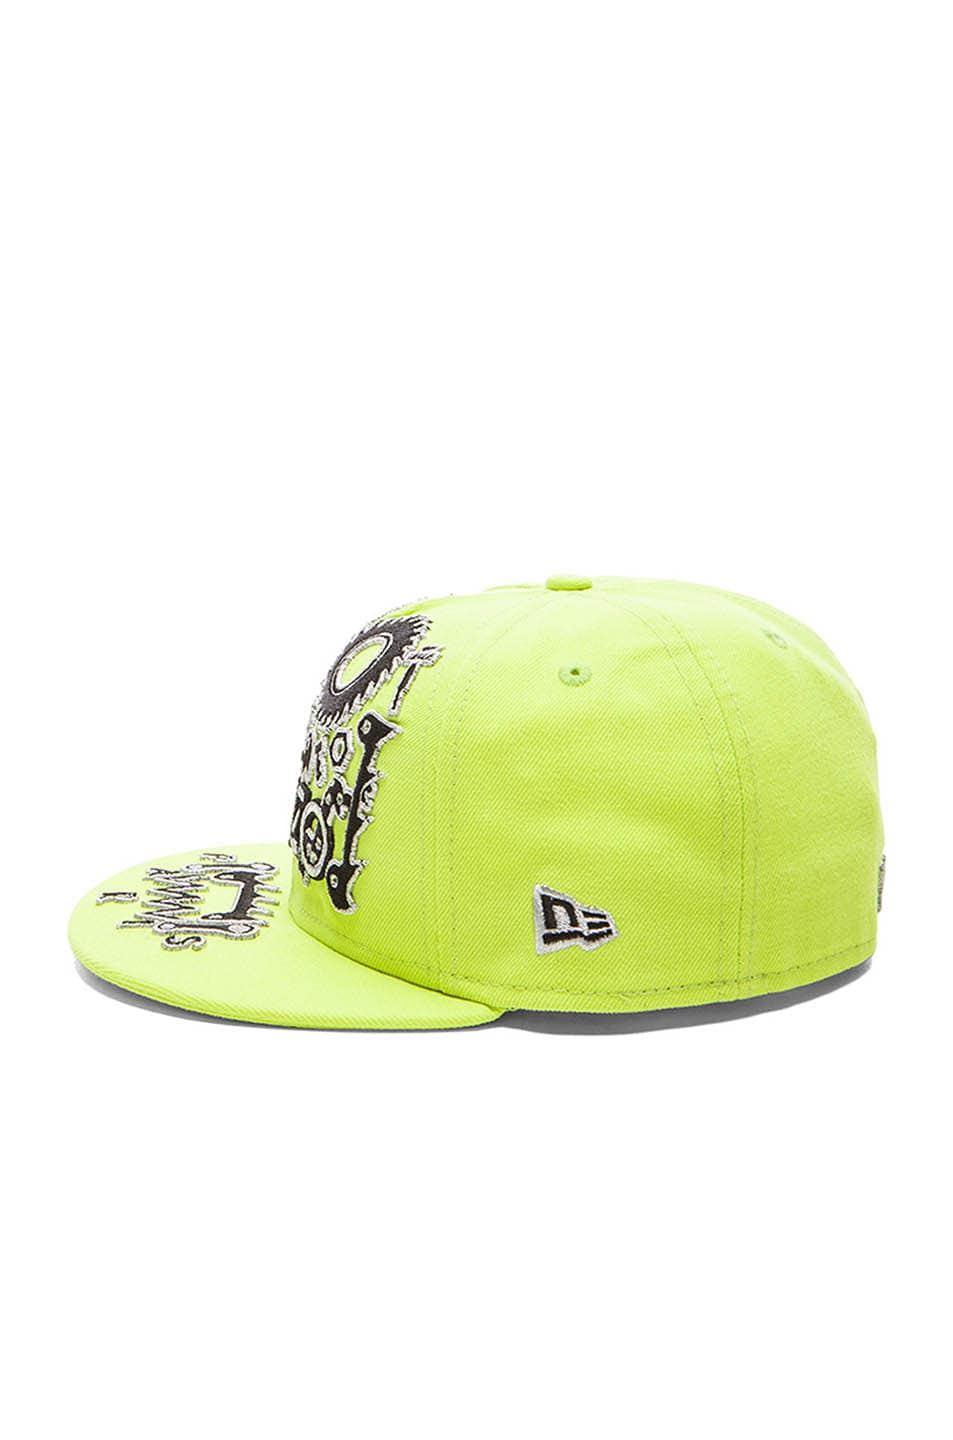 db29e271fcf Image 3 of Kenzo x New Era Monster Embroidery Cap in Green